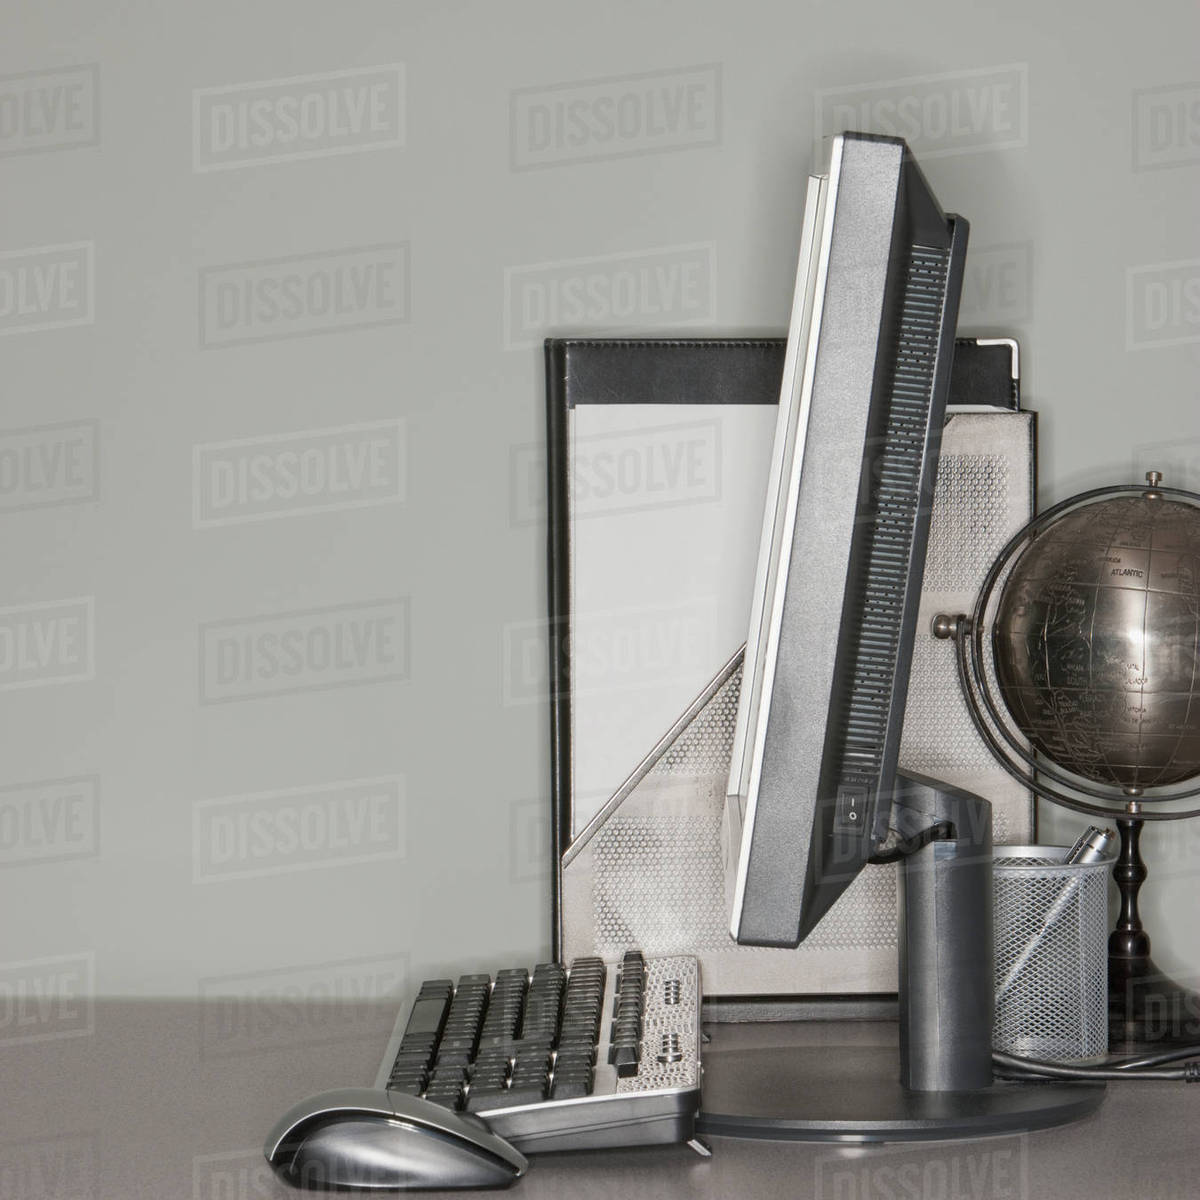 Computer And Globe On Office Desk